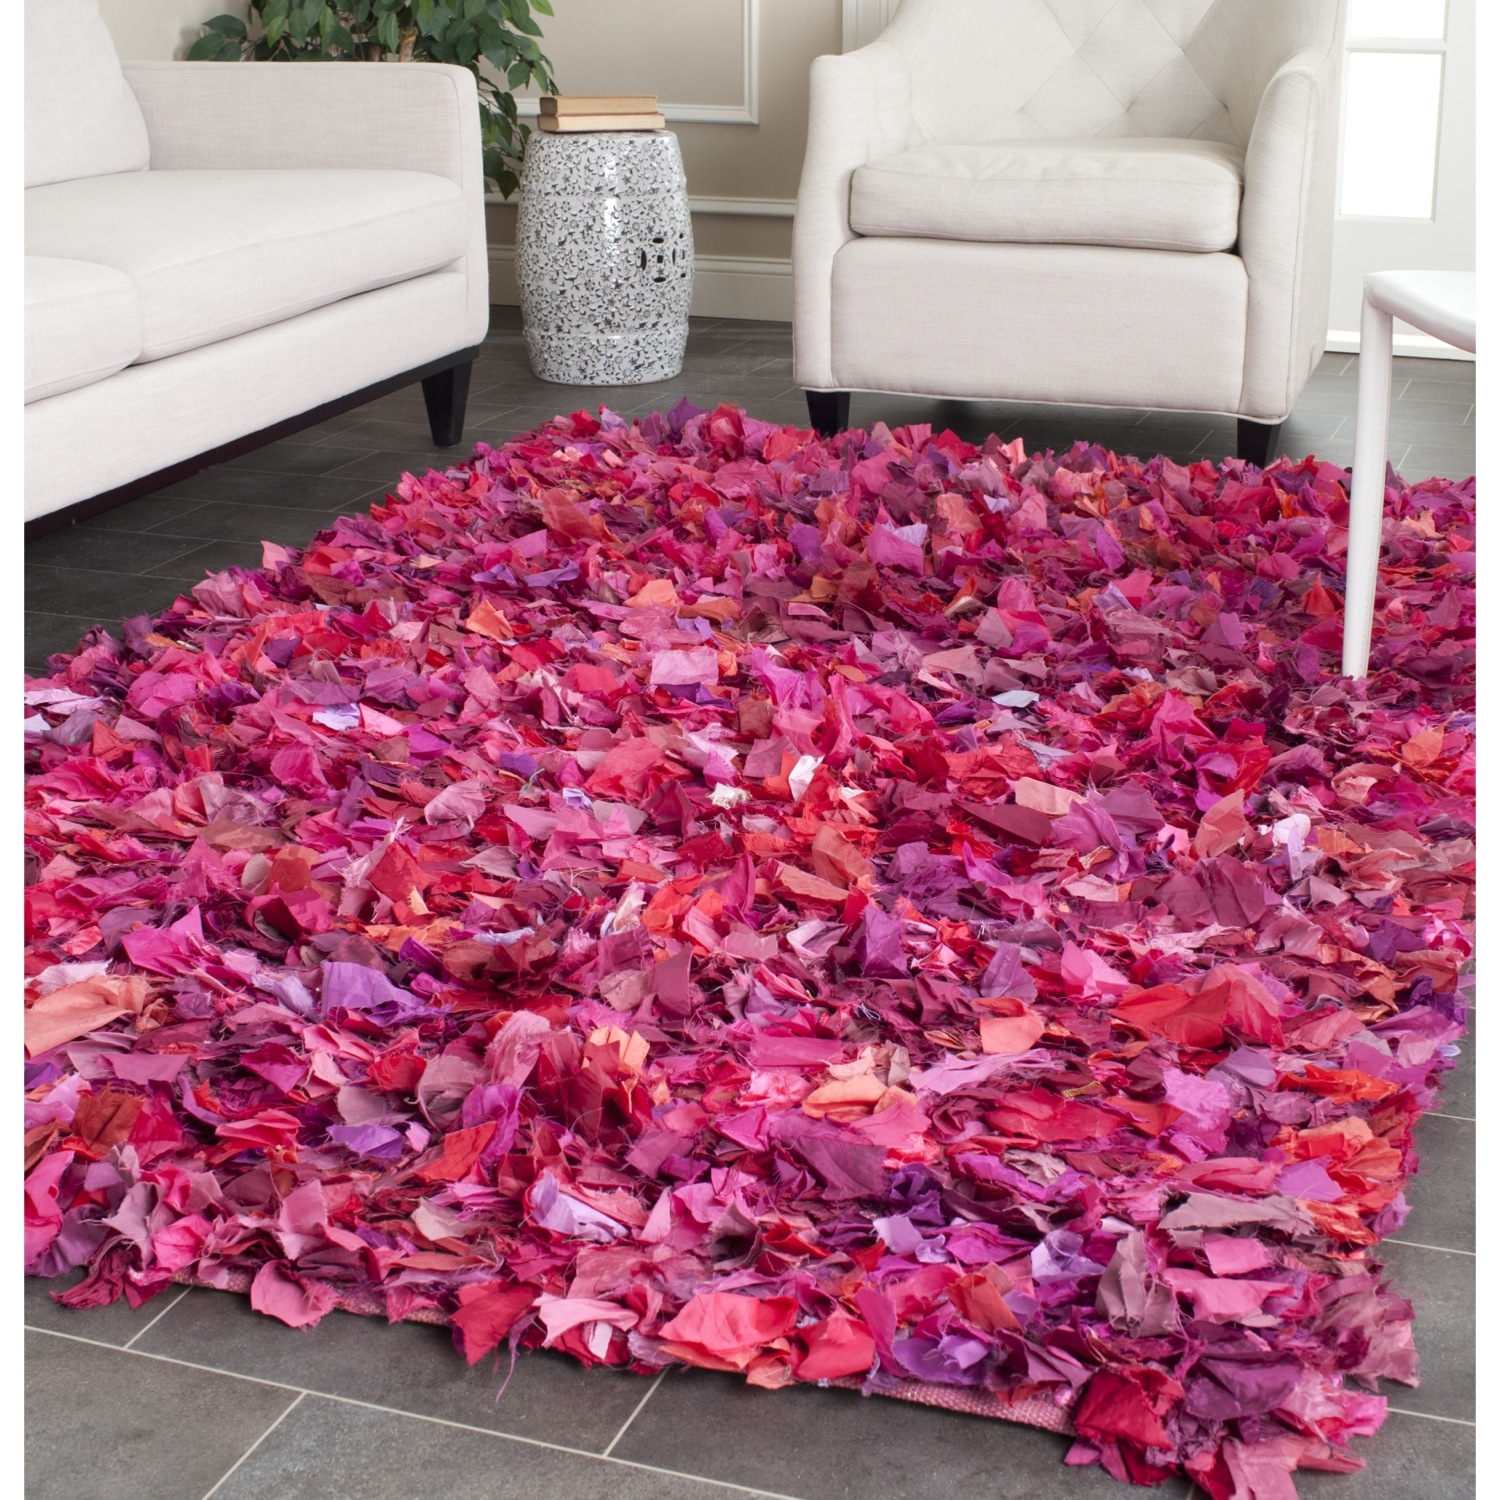 Safavieh Shag Hand Woven Chic Fuchsia Multi Area Rugs Sg951f Ebay Pertaining To Fuschia Pink Carpets (Image 14 of 15)